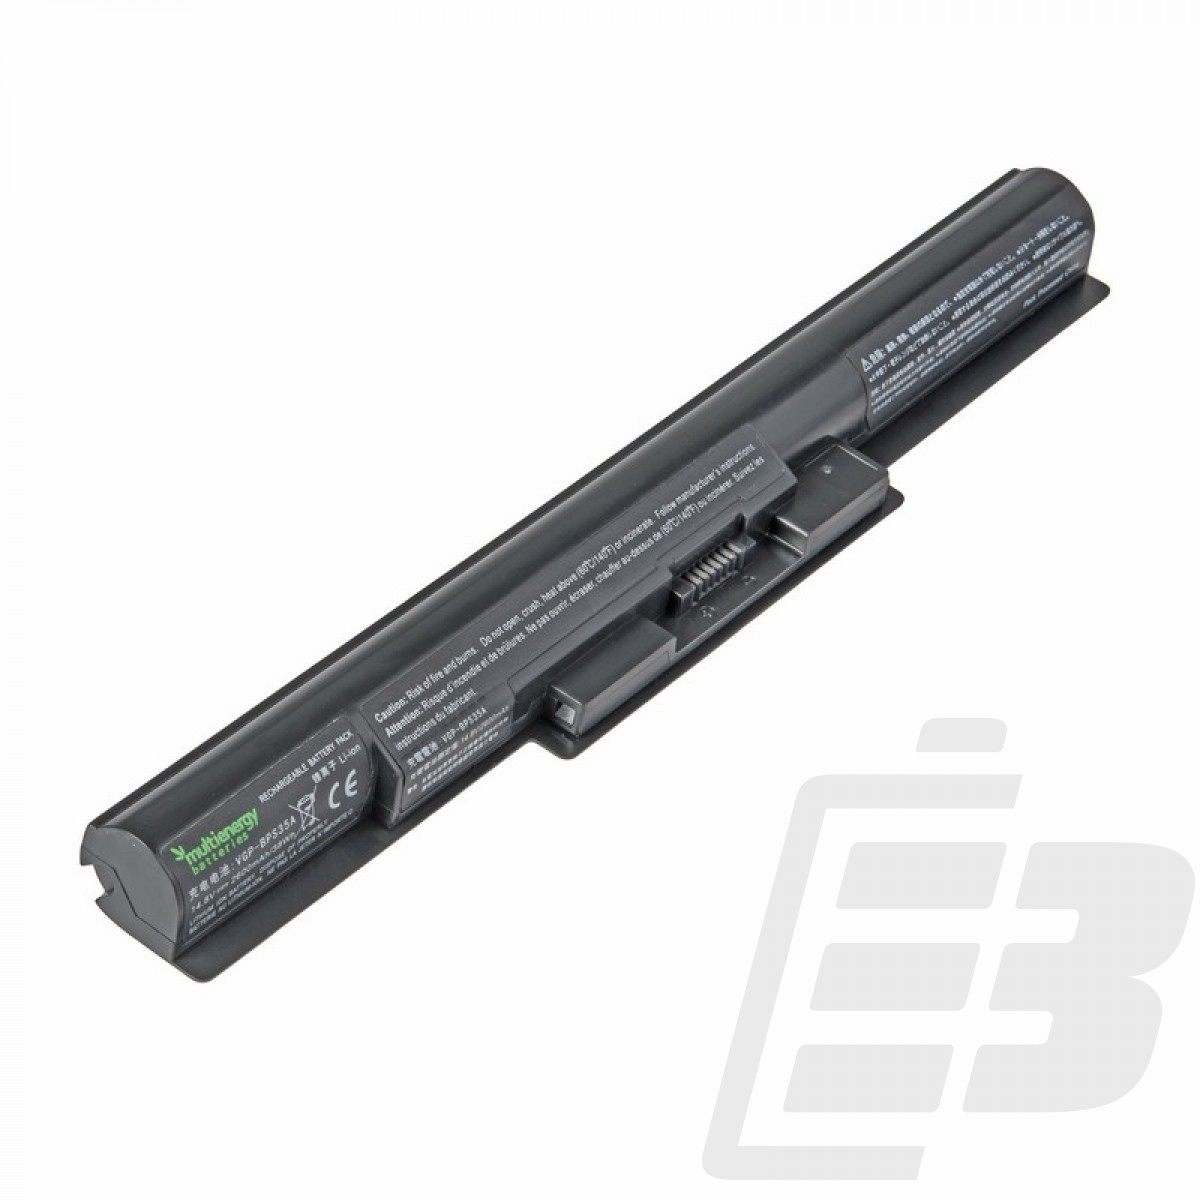 Μπαταρια Laptop Sony VGP-BPS35_1